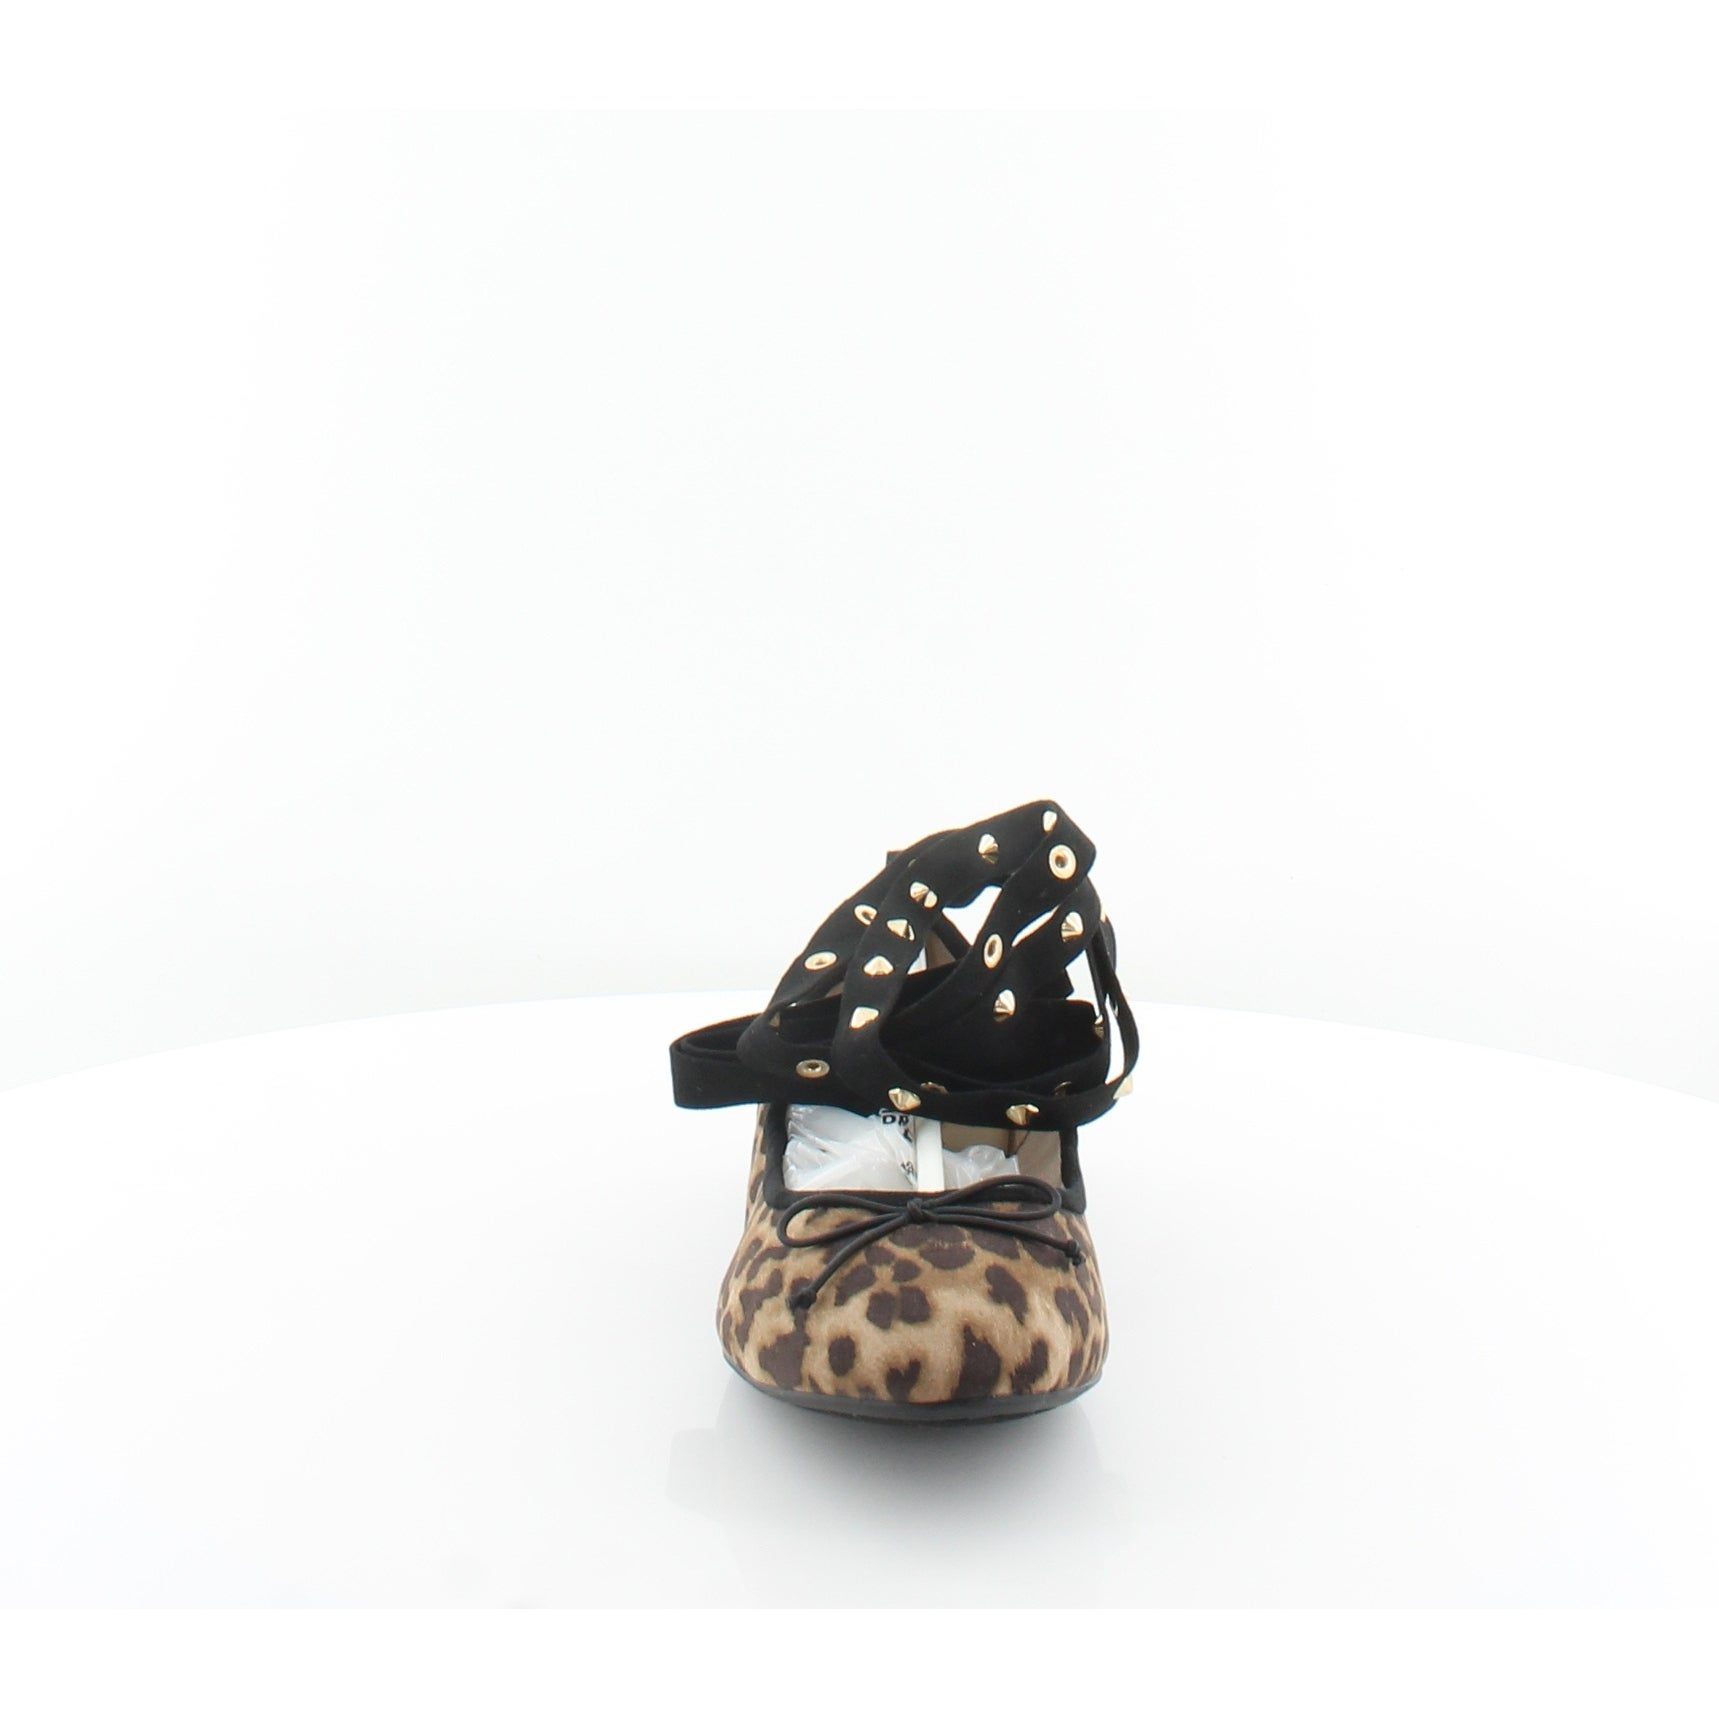 abb02430d Shop Circus by Sam Edelman Celyn Women's FLATS Cheetah - Free Shipping On  Orders Over $45 - Overstock - 25620593